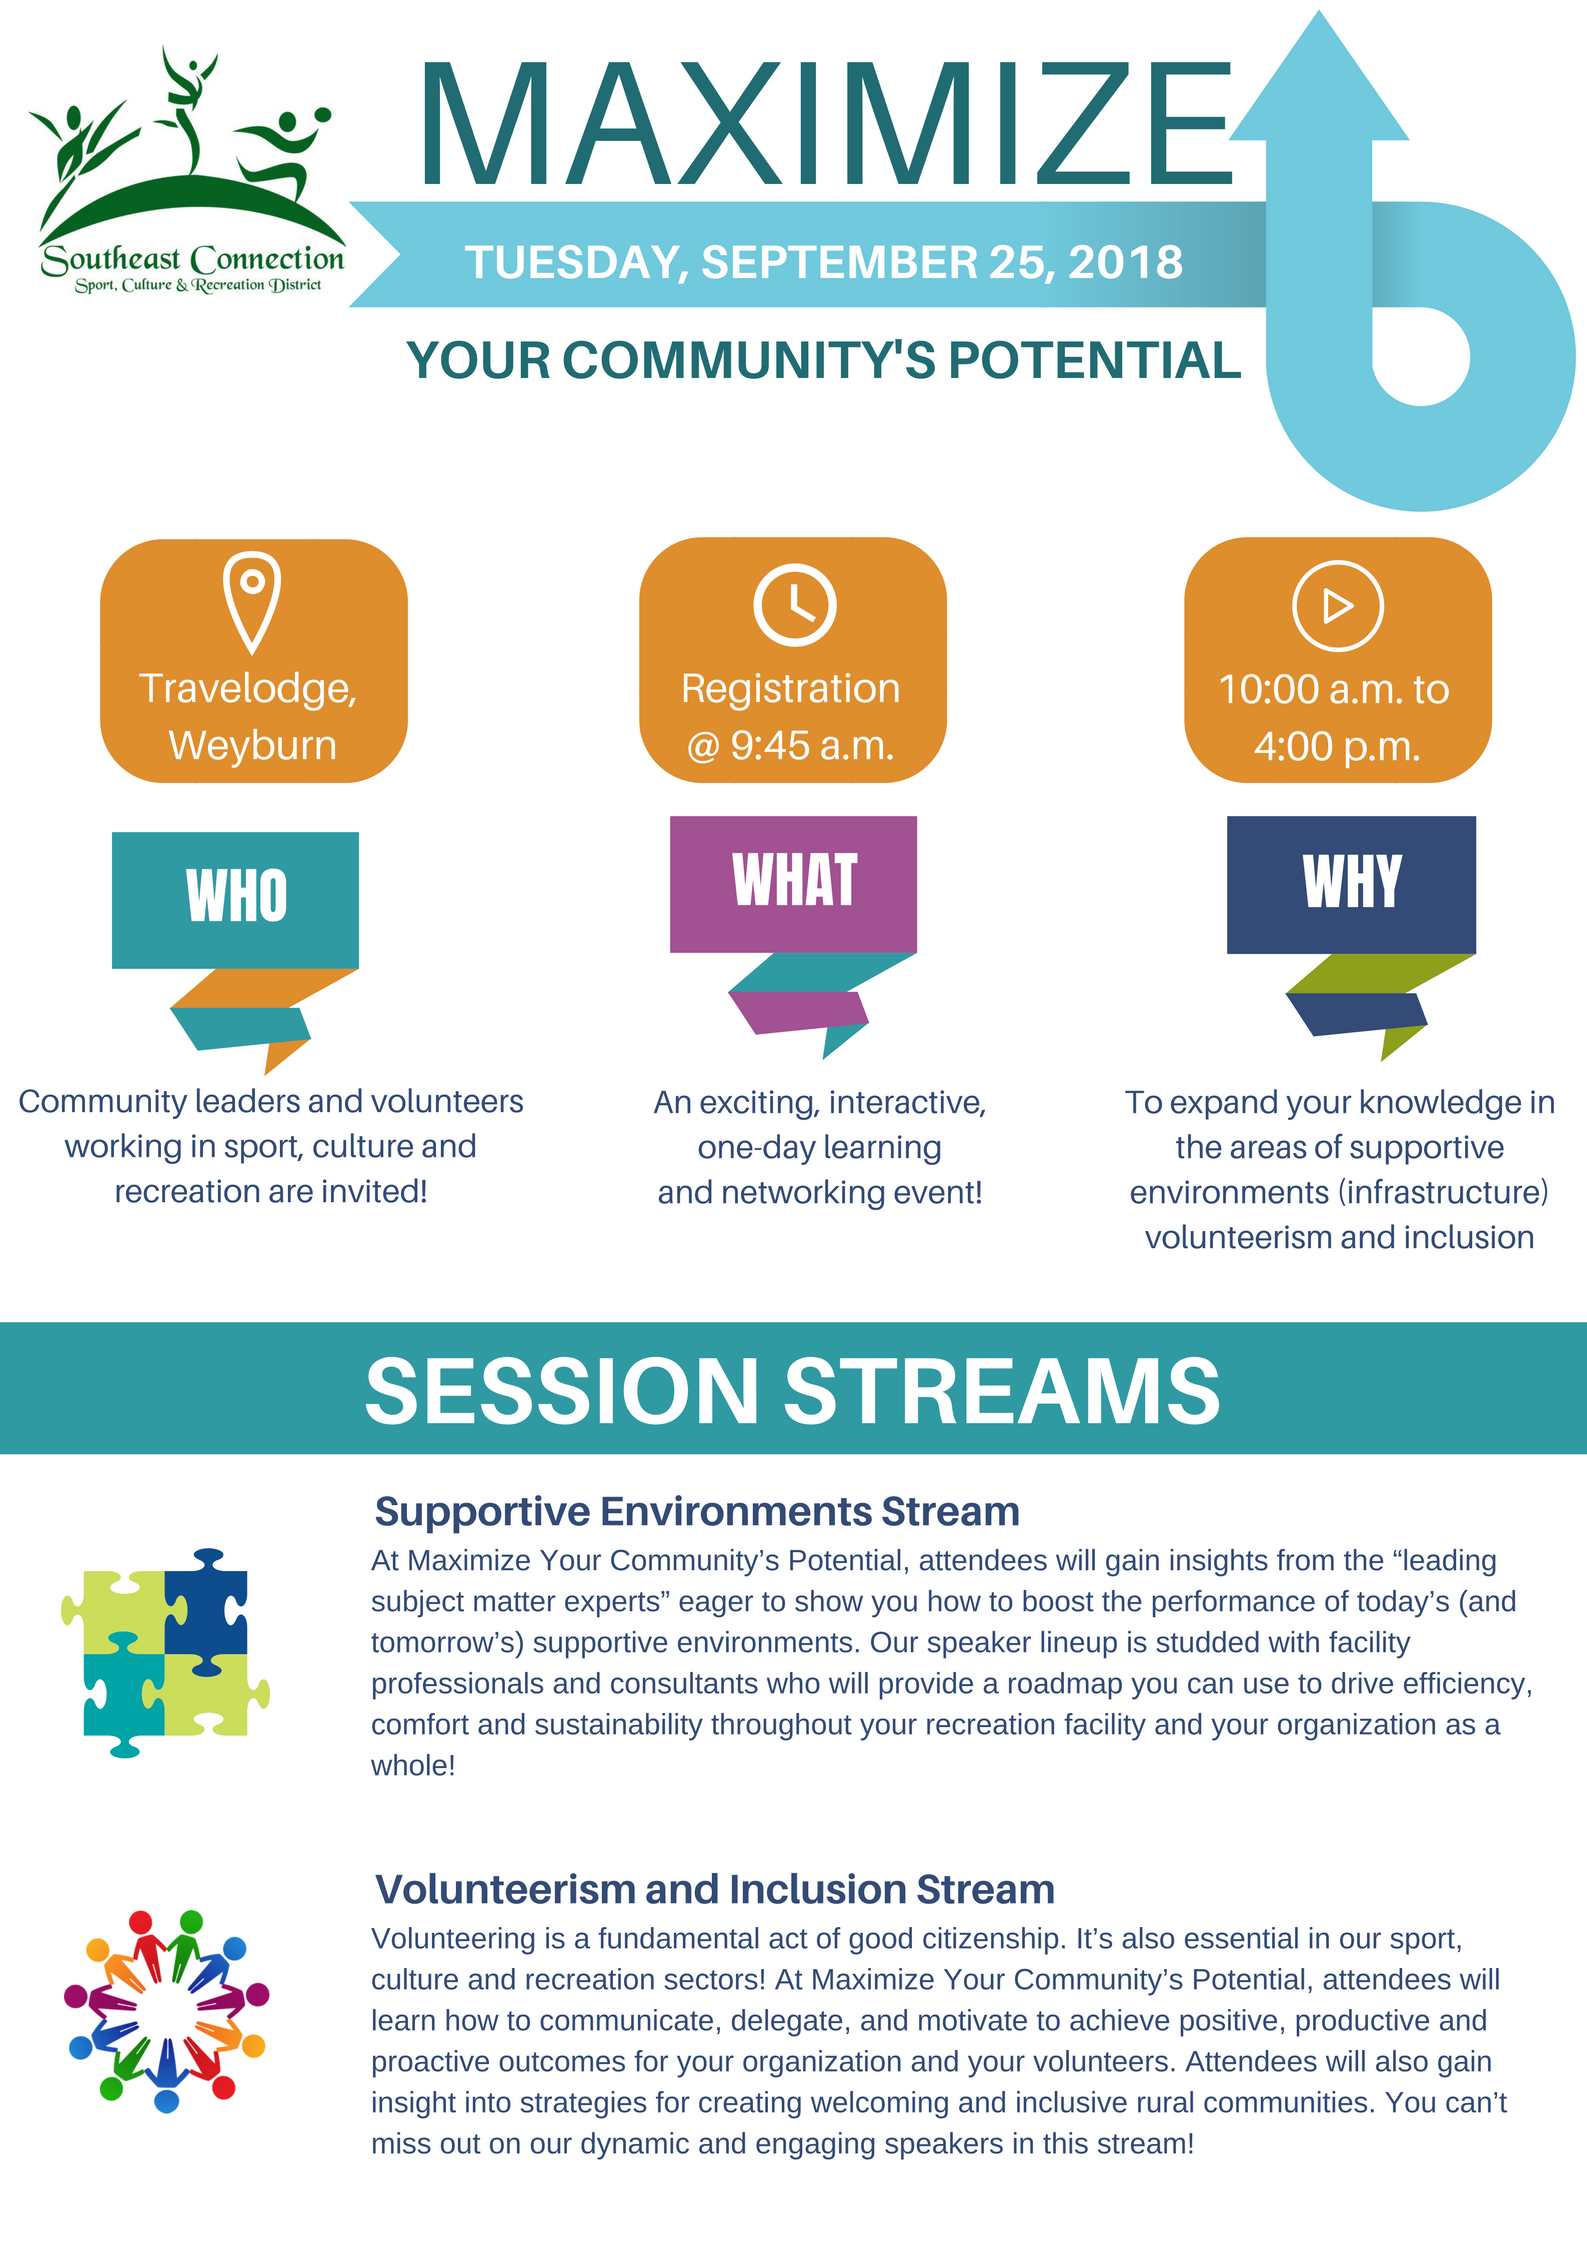 MAXIMIZE Your Community's Potential! - Image 1